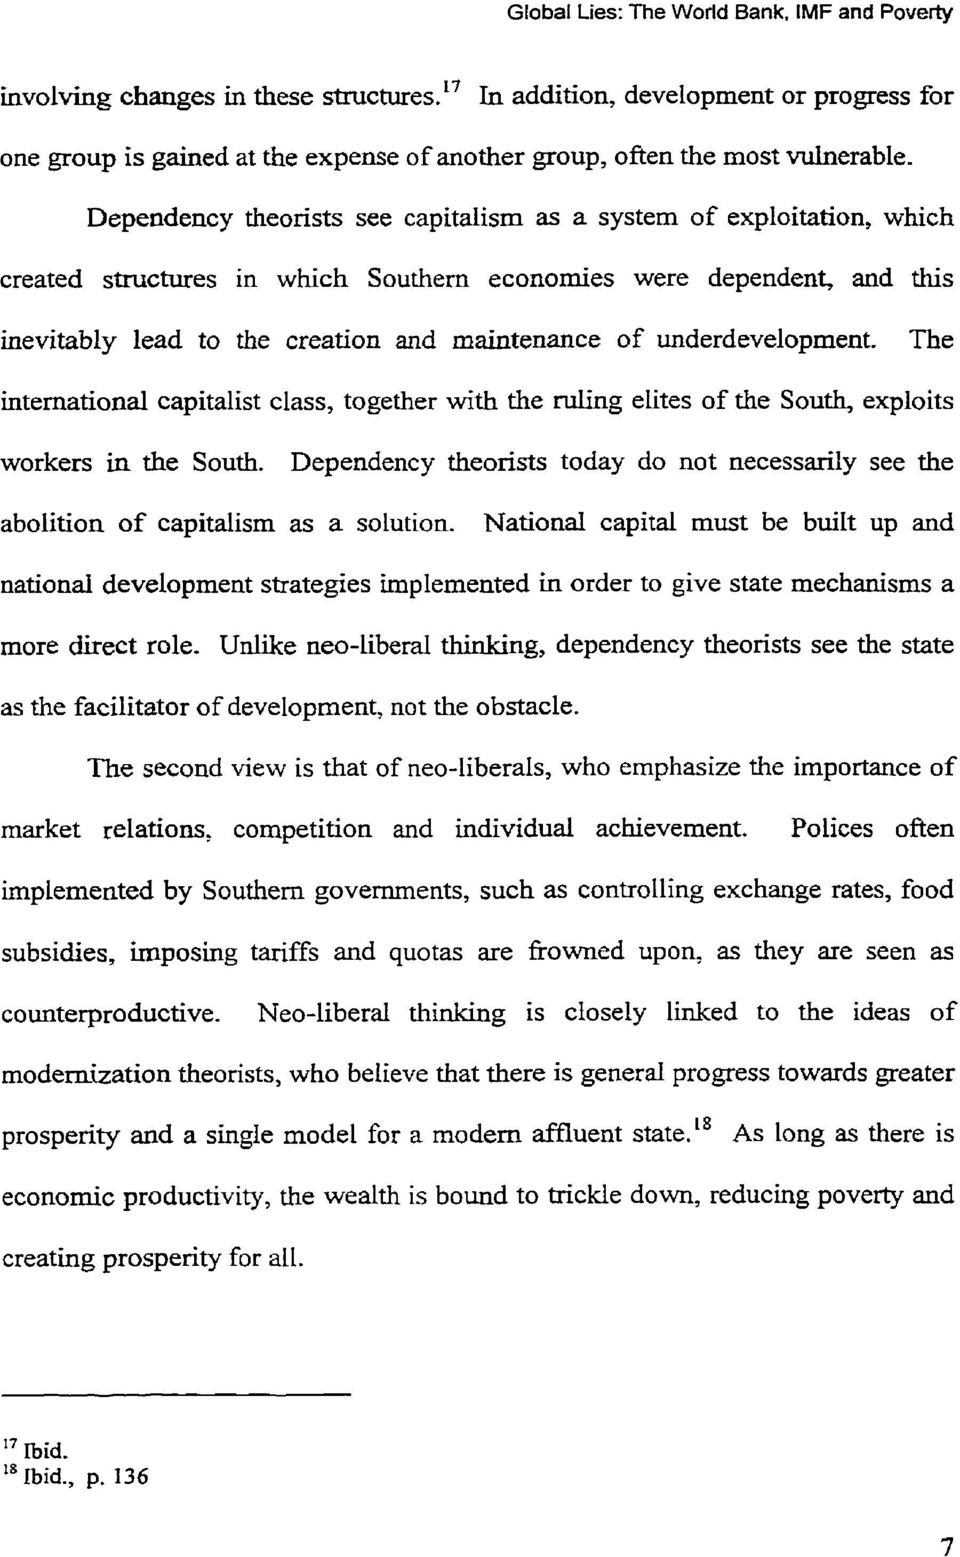 Dependency theonsts see capitalism as a system of exploitation, which created structures in which Southern economies were dependent, and this inevitably lead to the creation and maintenance of